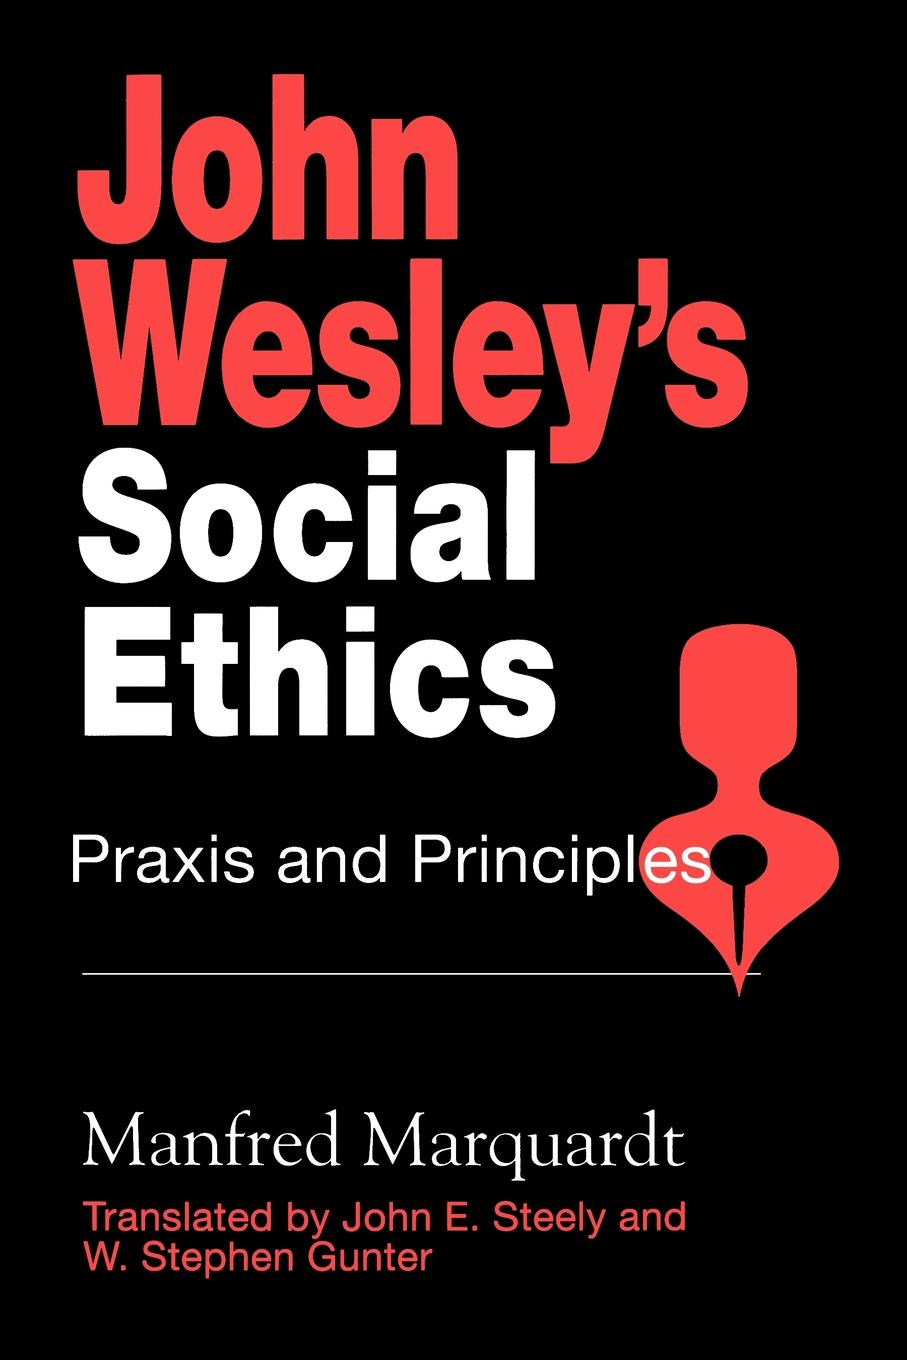 Manfred Marquardt, John E. Steely, W. Stephen Gunter John Wesley's Social Ethics. Praxis and Principles louis w fry liminal spaces and call for praxis ing